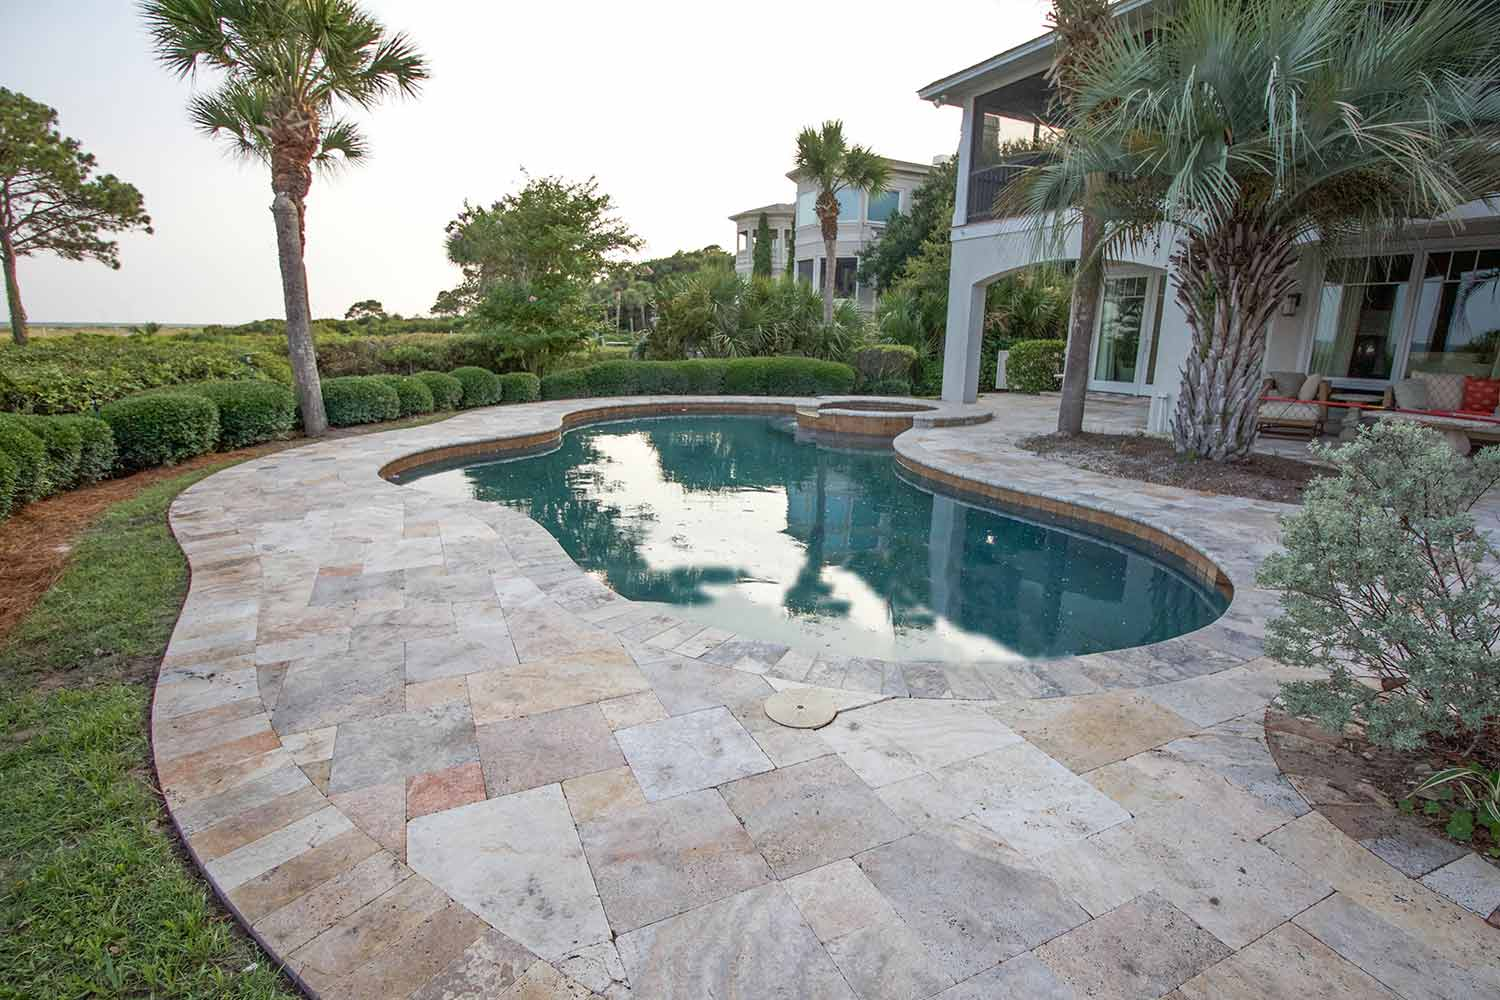 Travertine Stone Pool Deck Installation Hilton Head Island SC